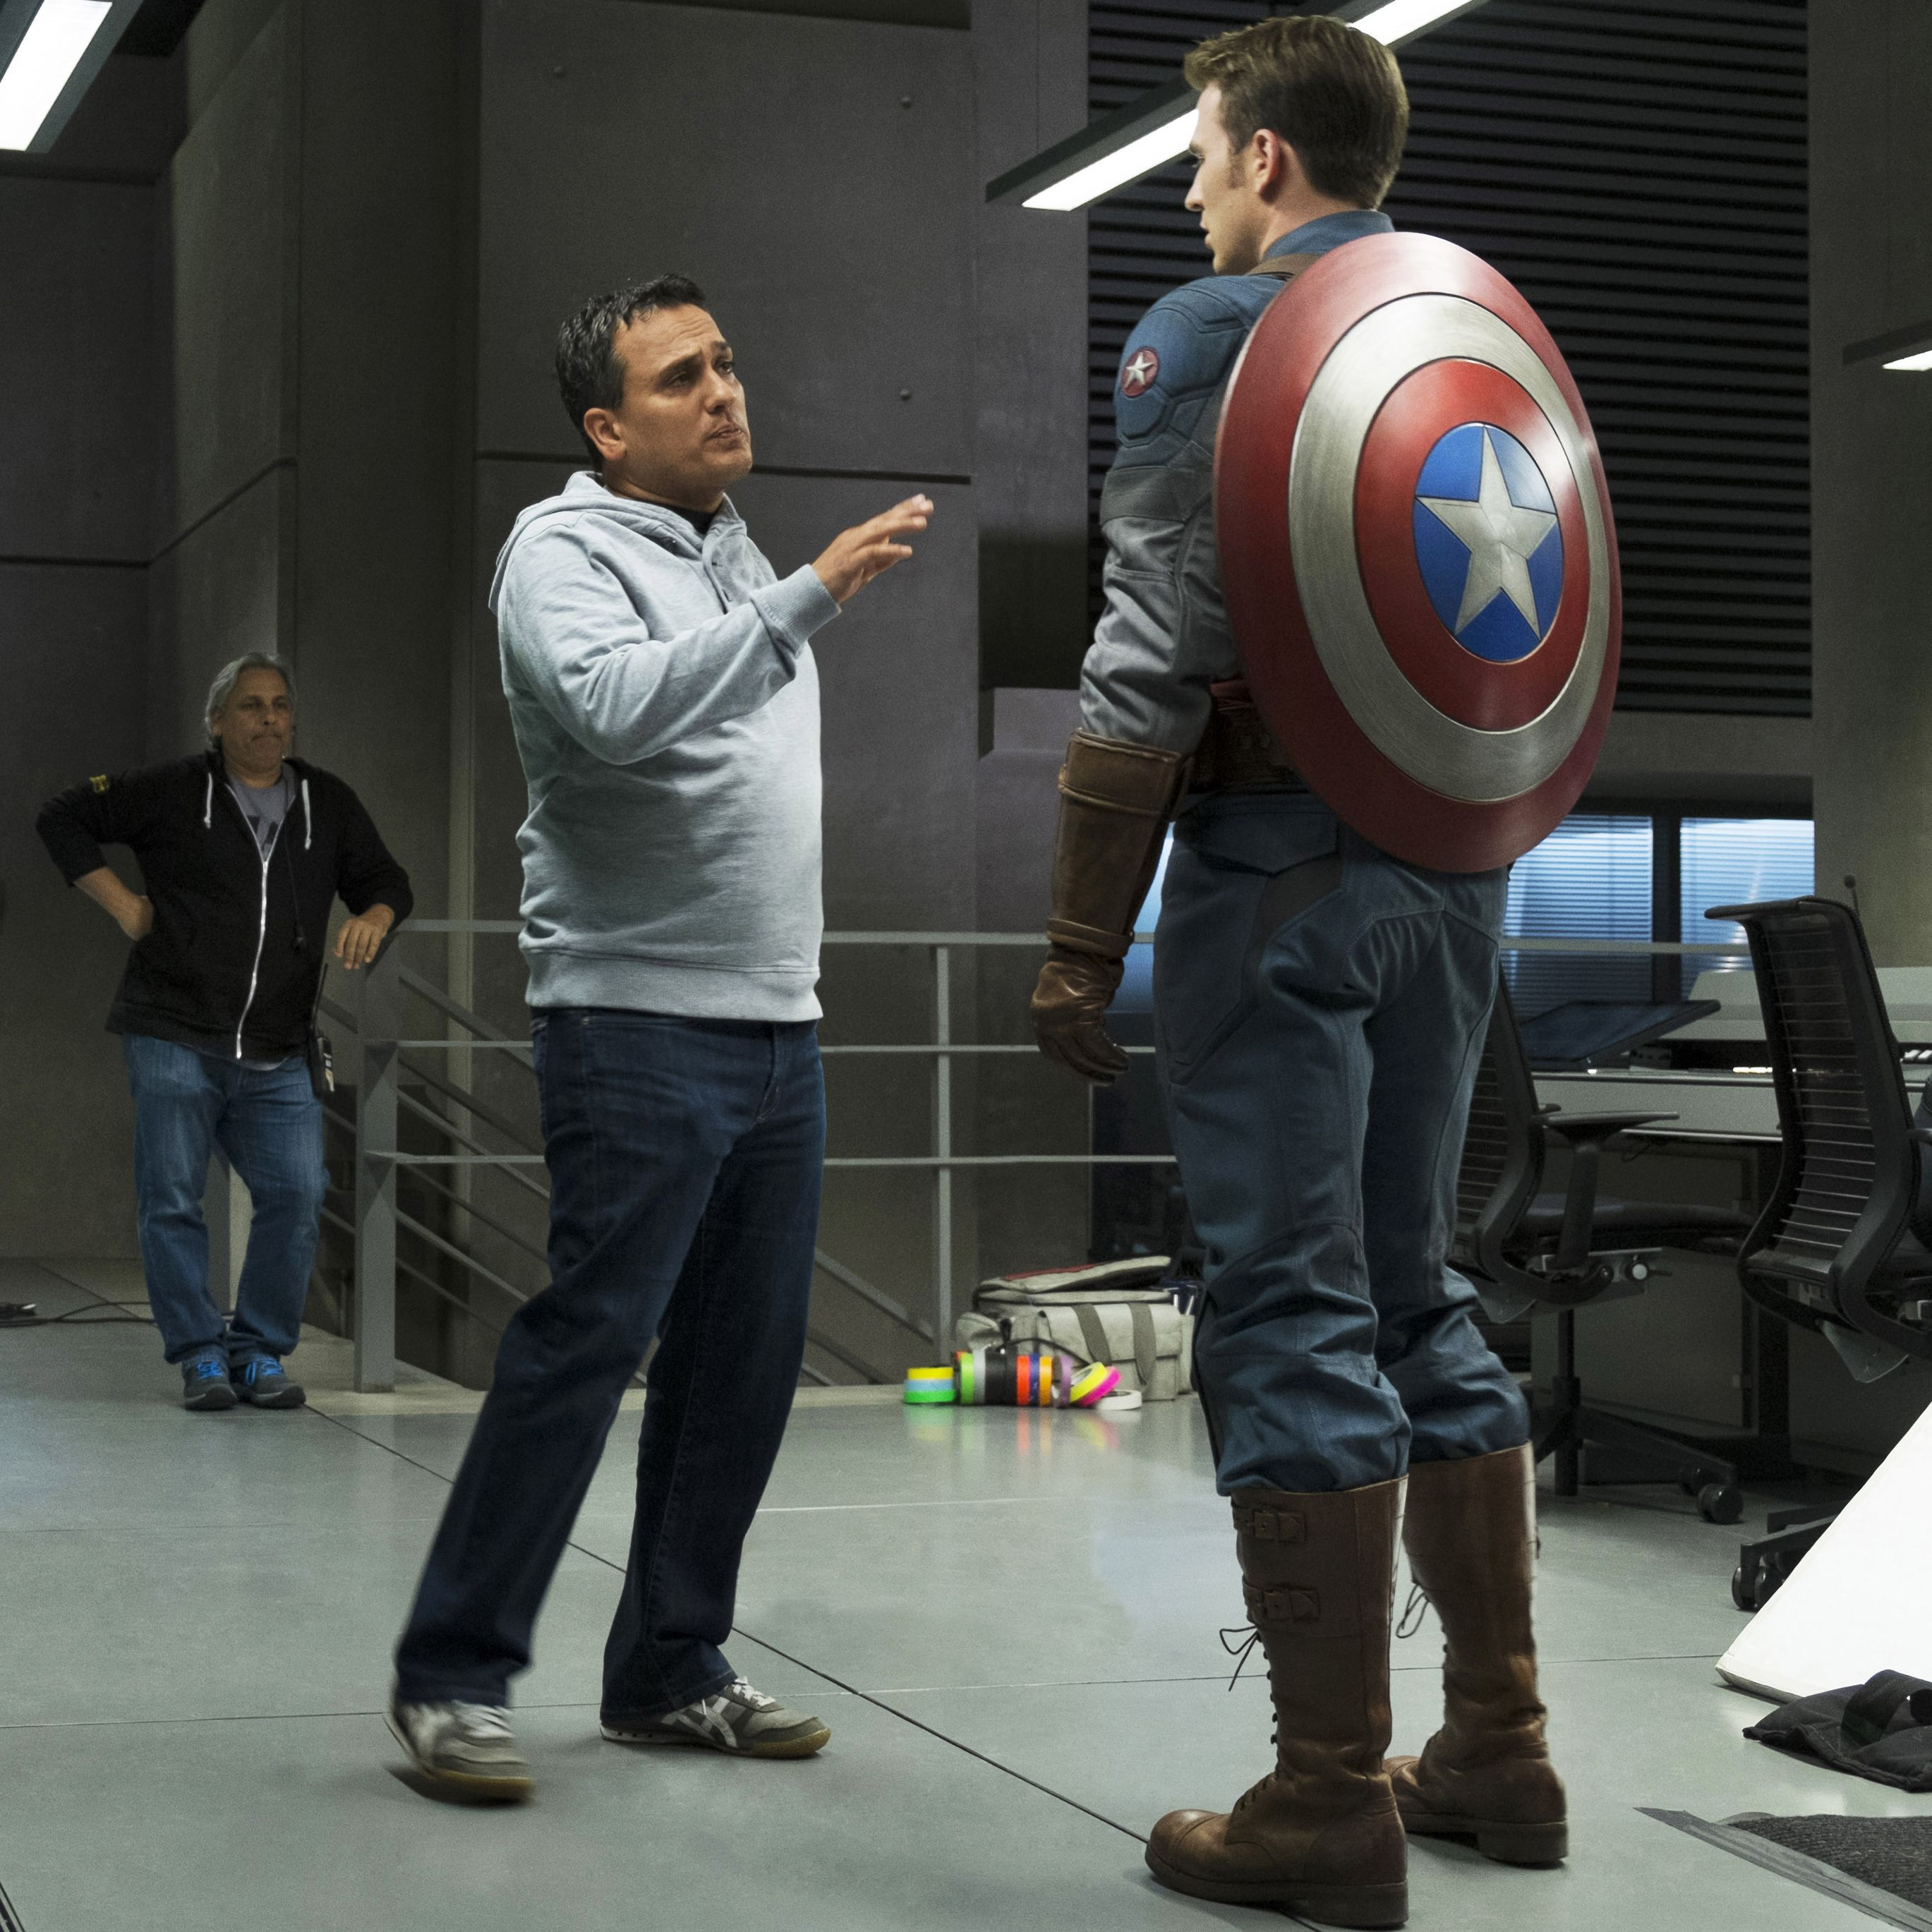 Joe Russo directing Chris Evans on the set of Captain America: The Winter Soldier in 2014.